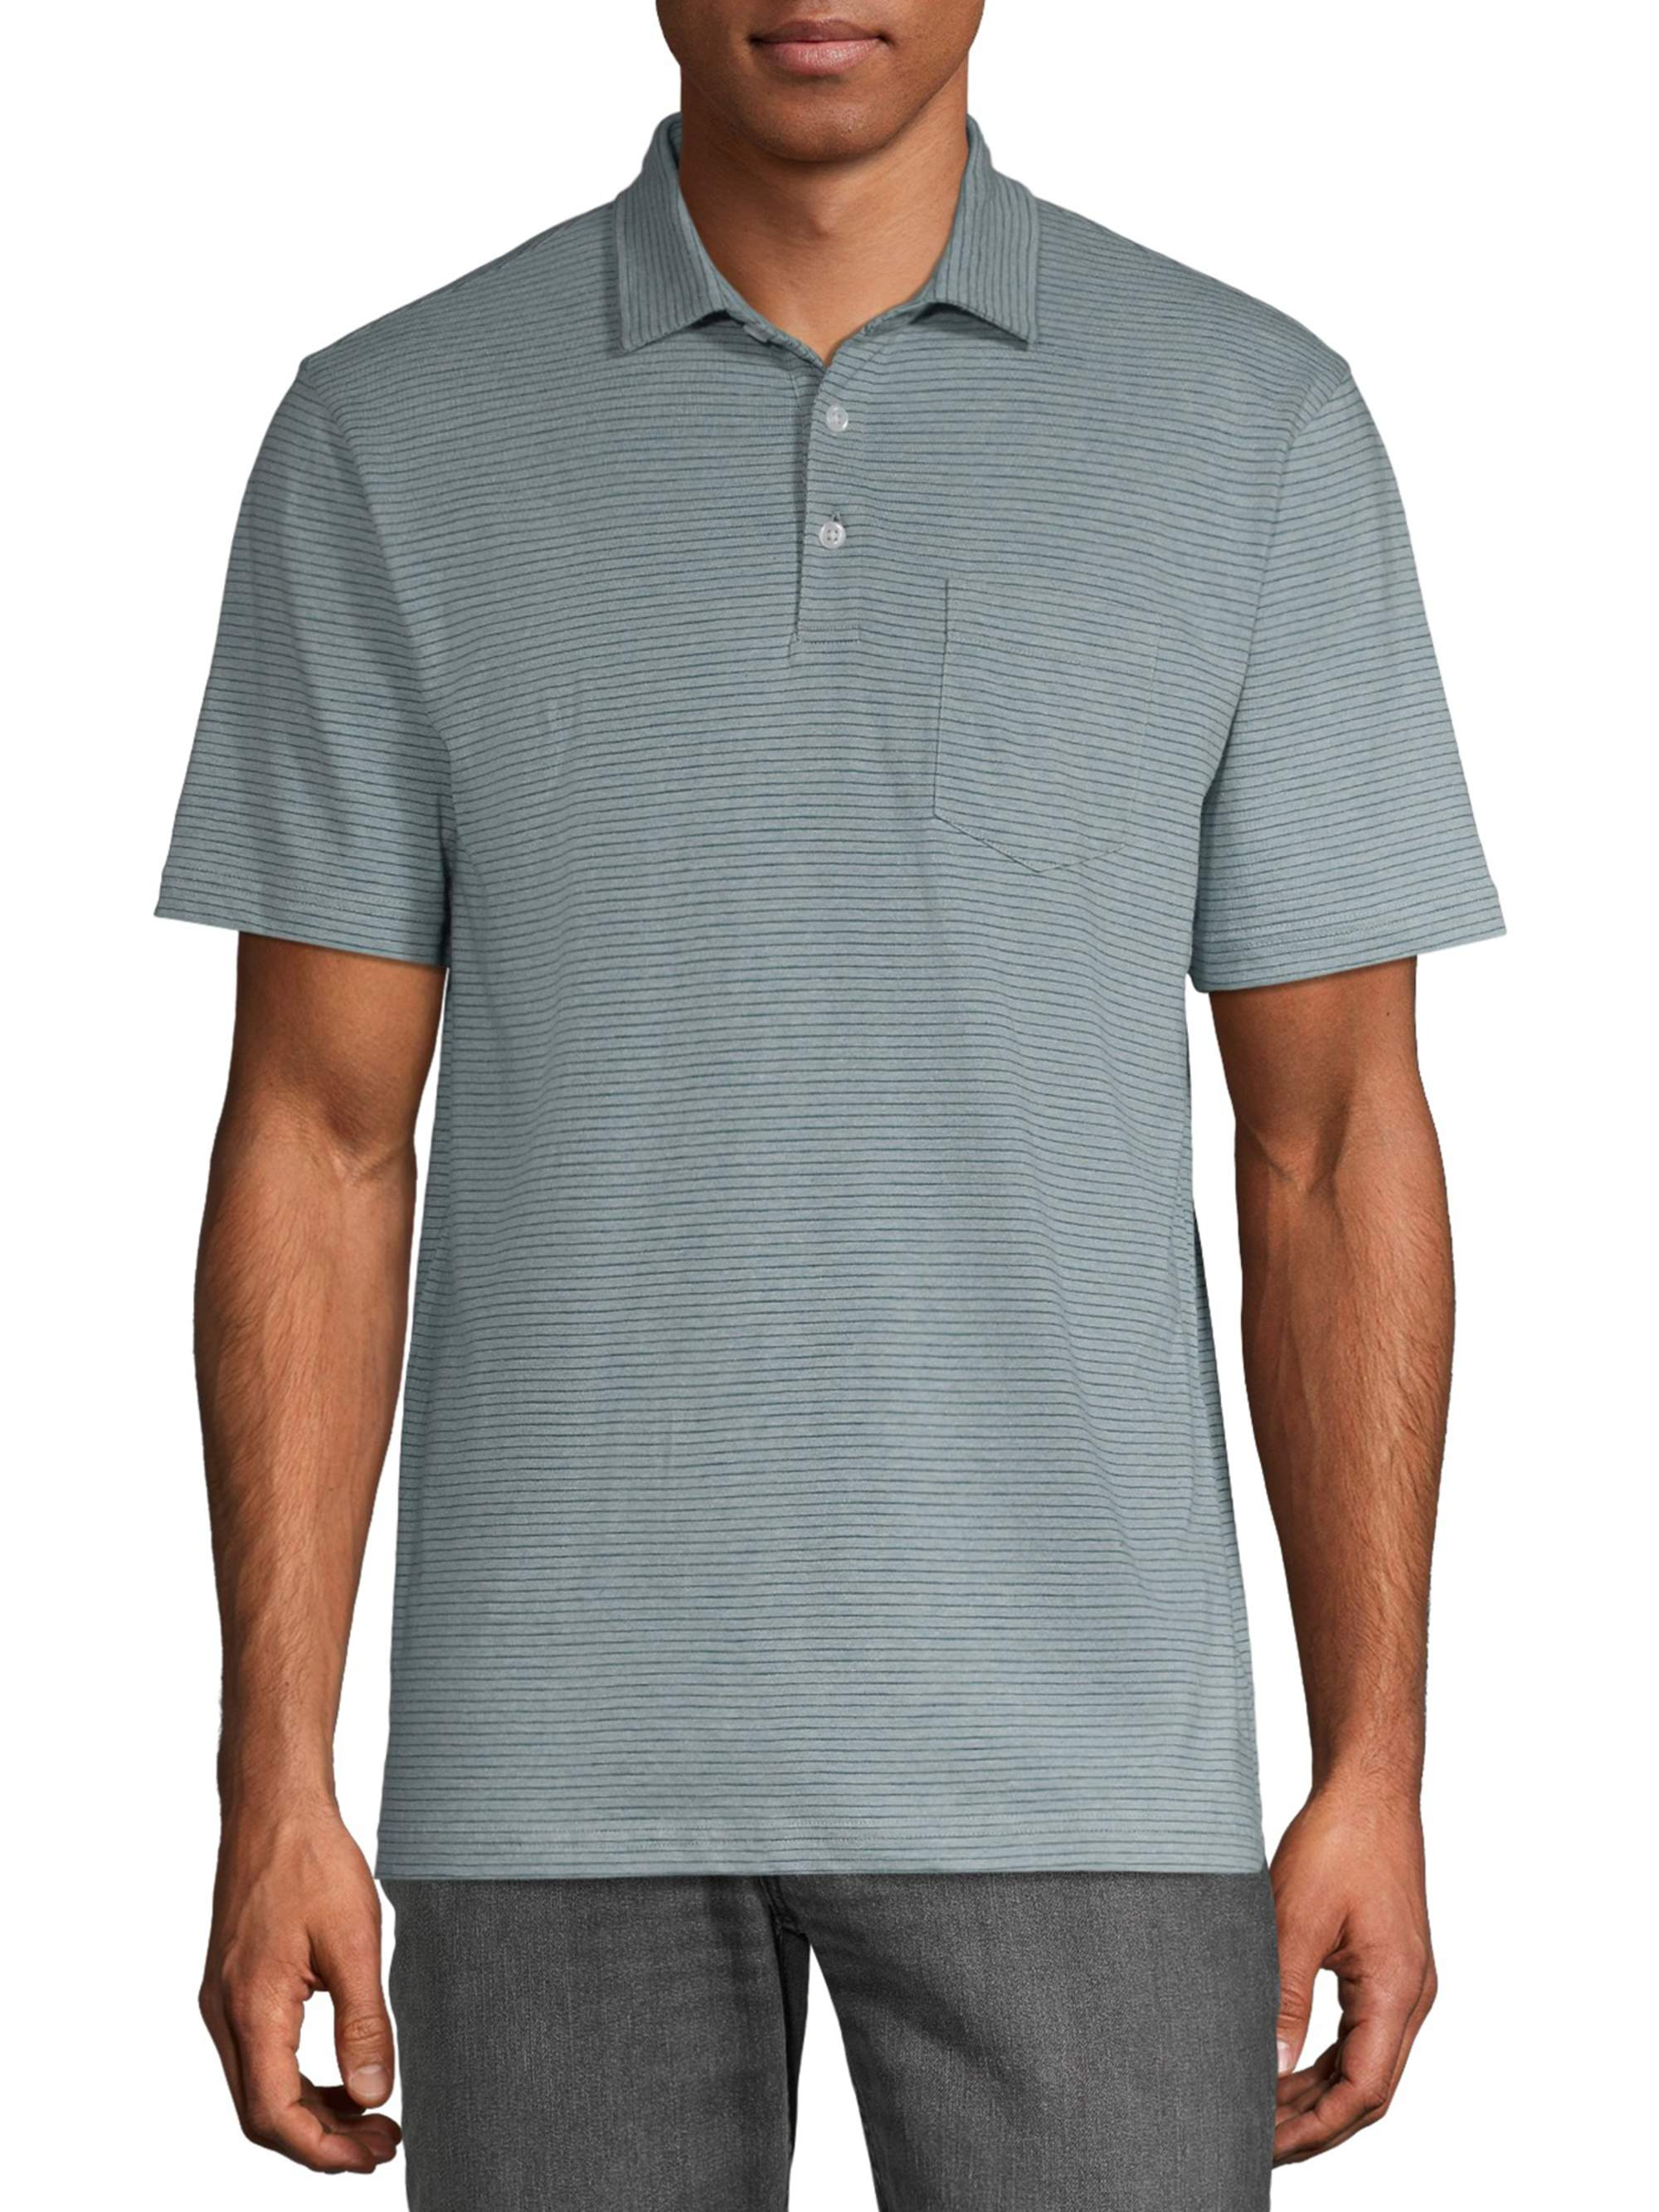 Men's Jersey Polo Only $5.50 a...